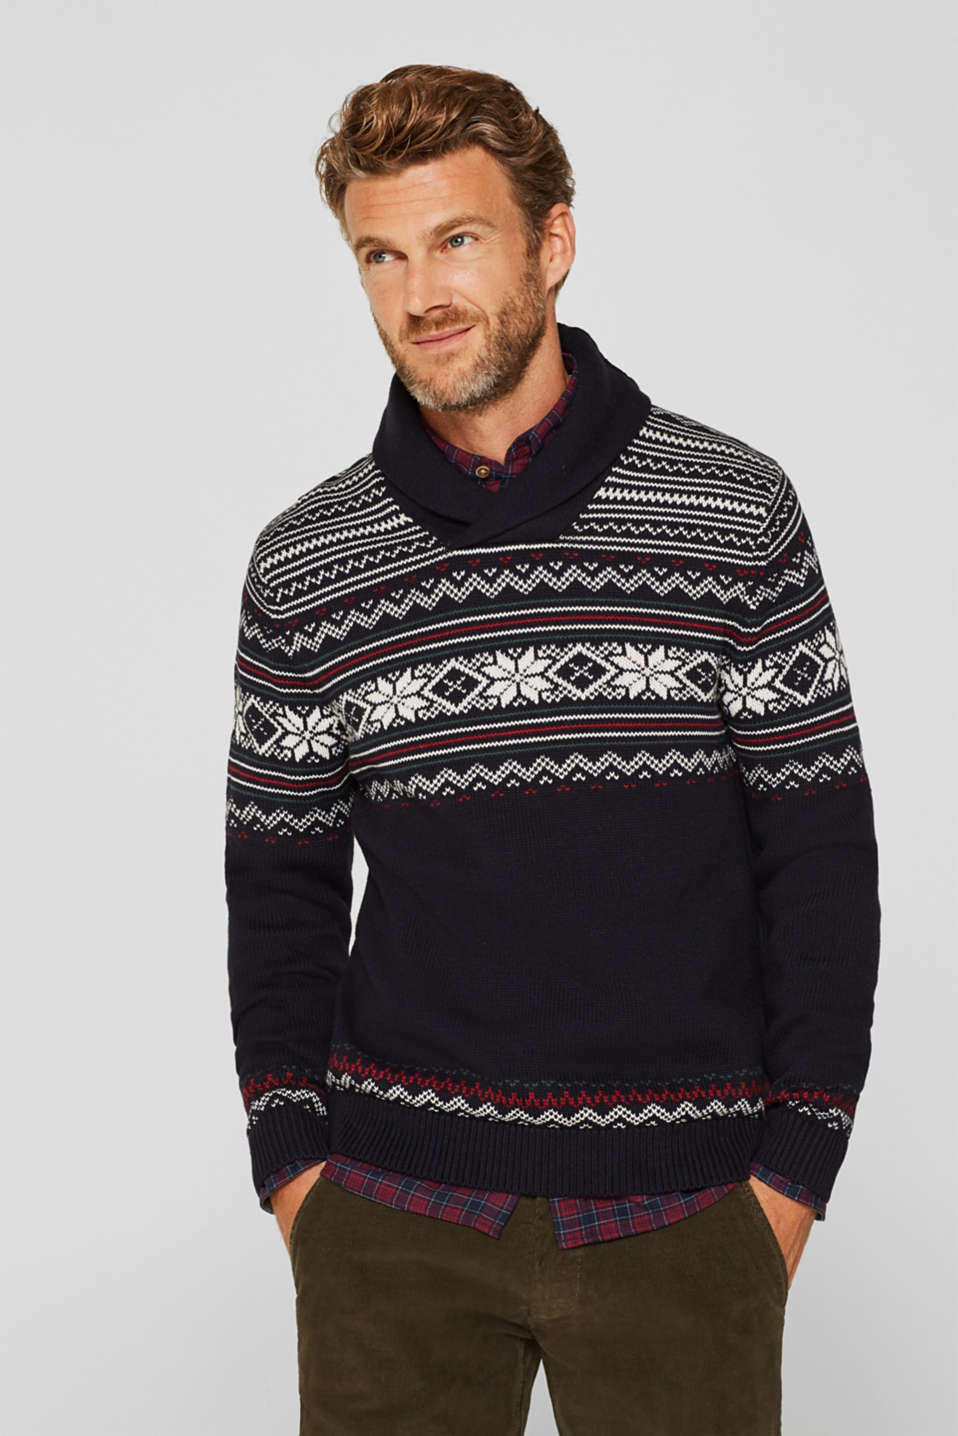 Esprit - With wool: Jumper with a Fair Isle pattern